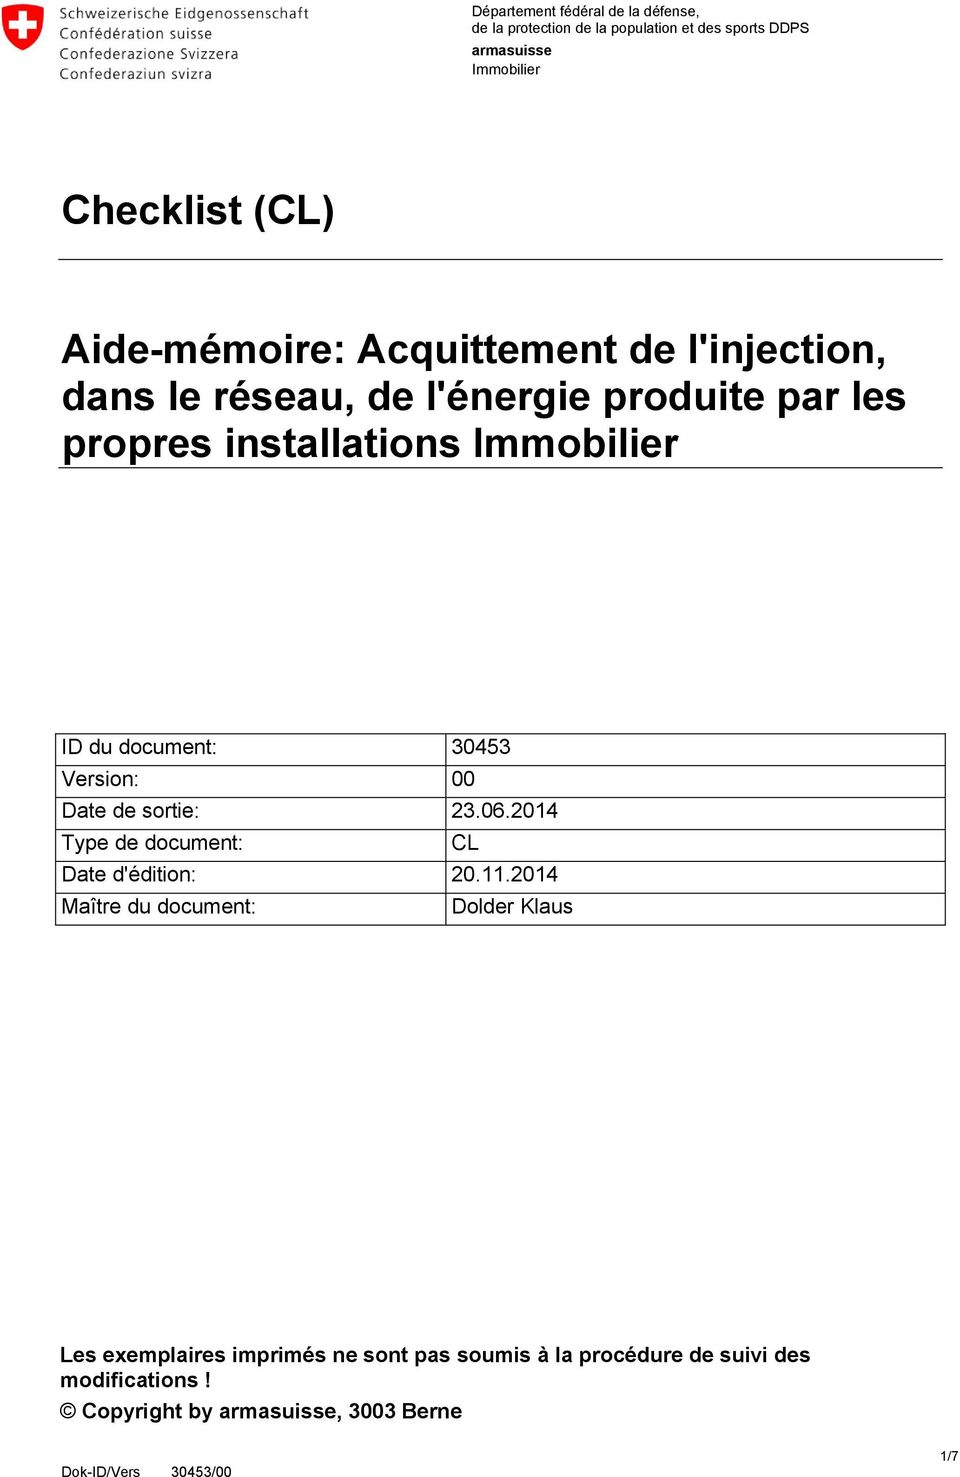 document: 30453 Version: 00 Date de sortie: 23.06.2014 Type de document: CL Date d'édition: 20.11.